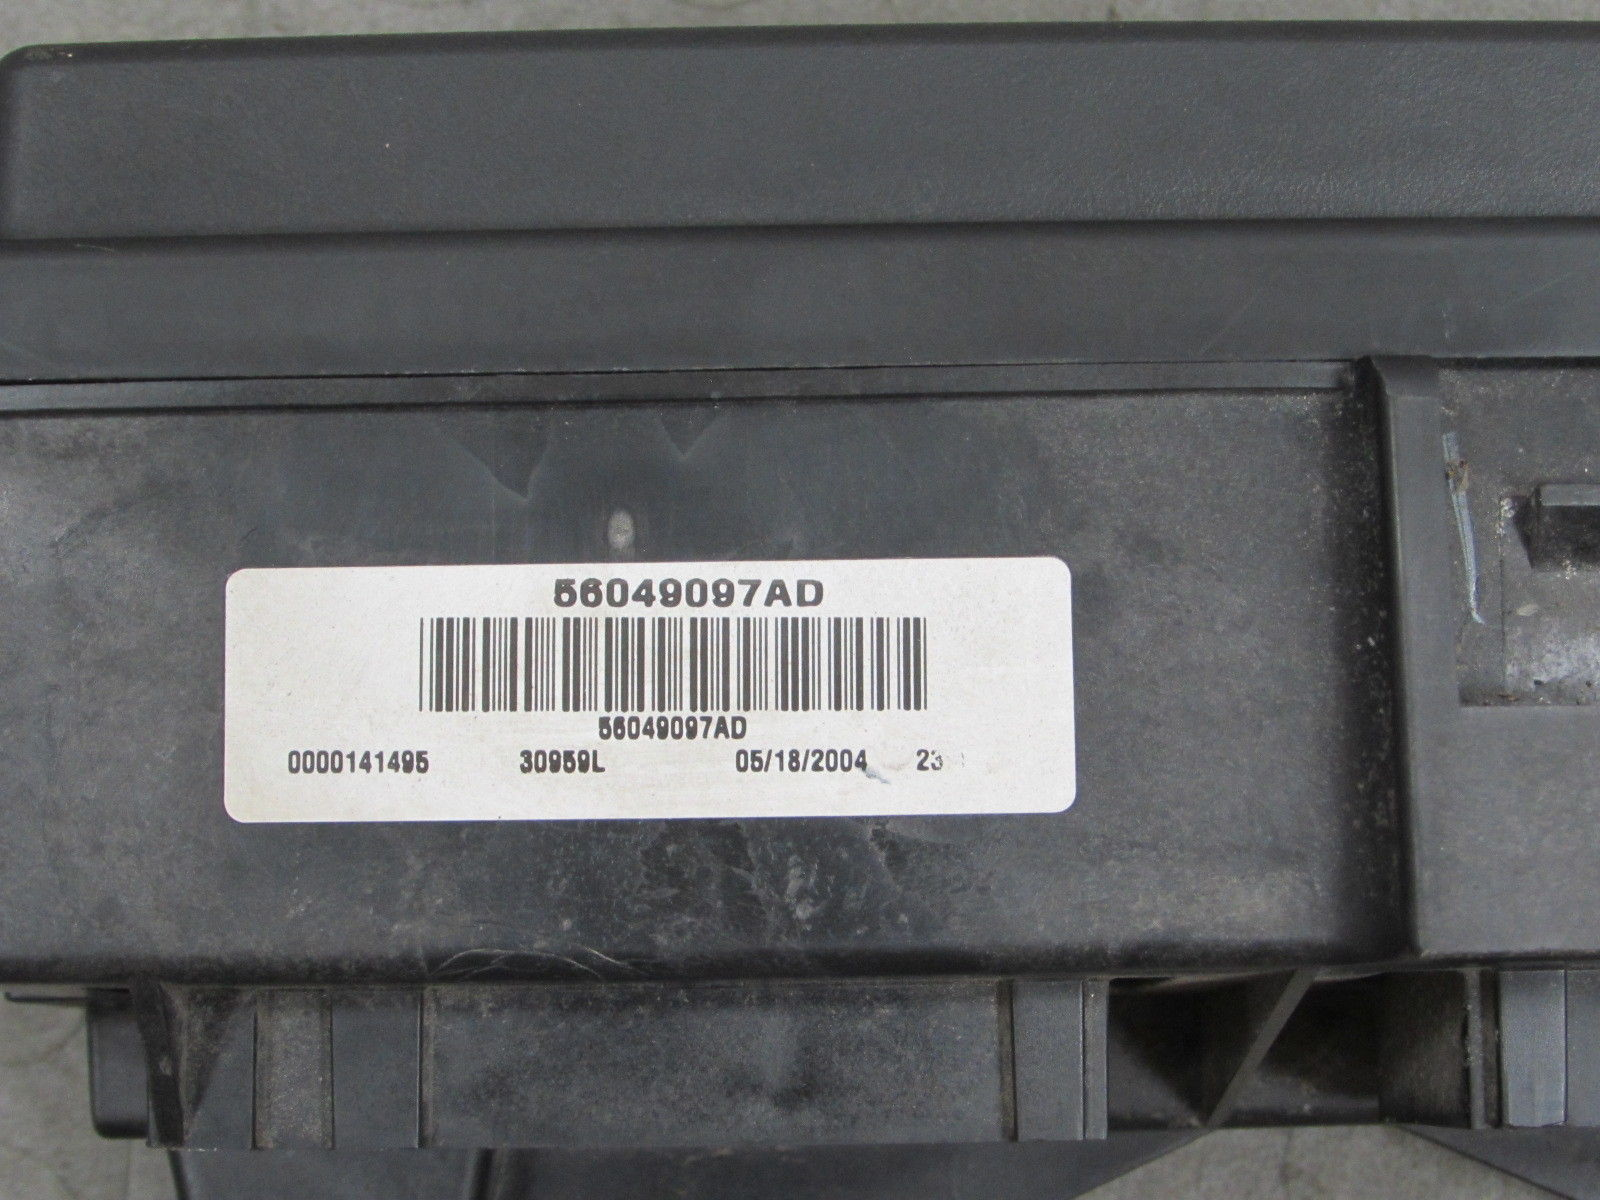 hight resolution of 04 05 dodge durango integrated power module fuse box block 56049097ad u importapart